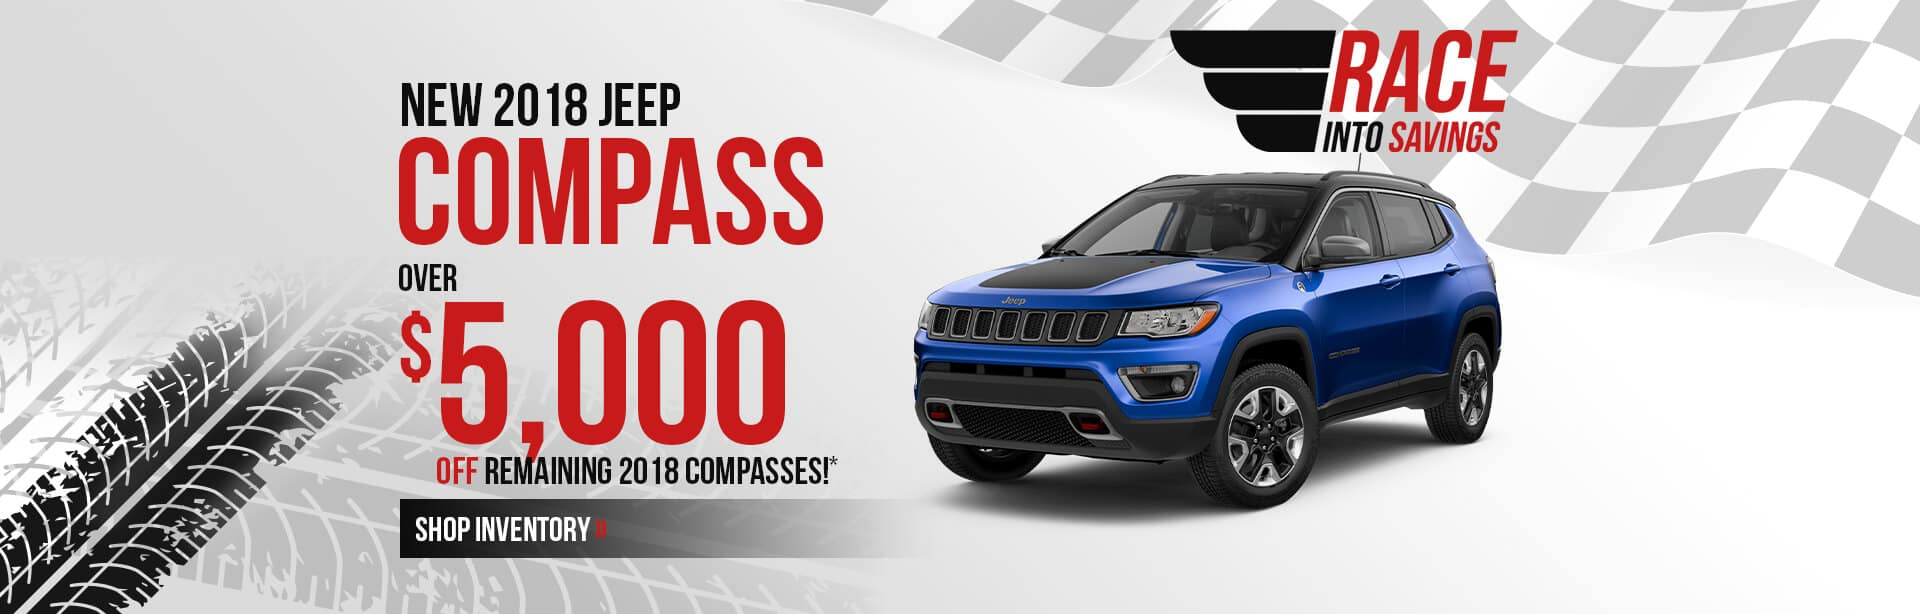 Save Over $5,000 on a 2018 Jeep Compass near Lafayette, Indiana.